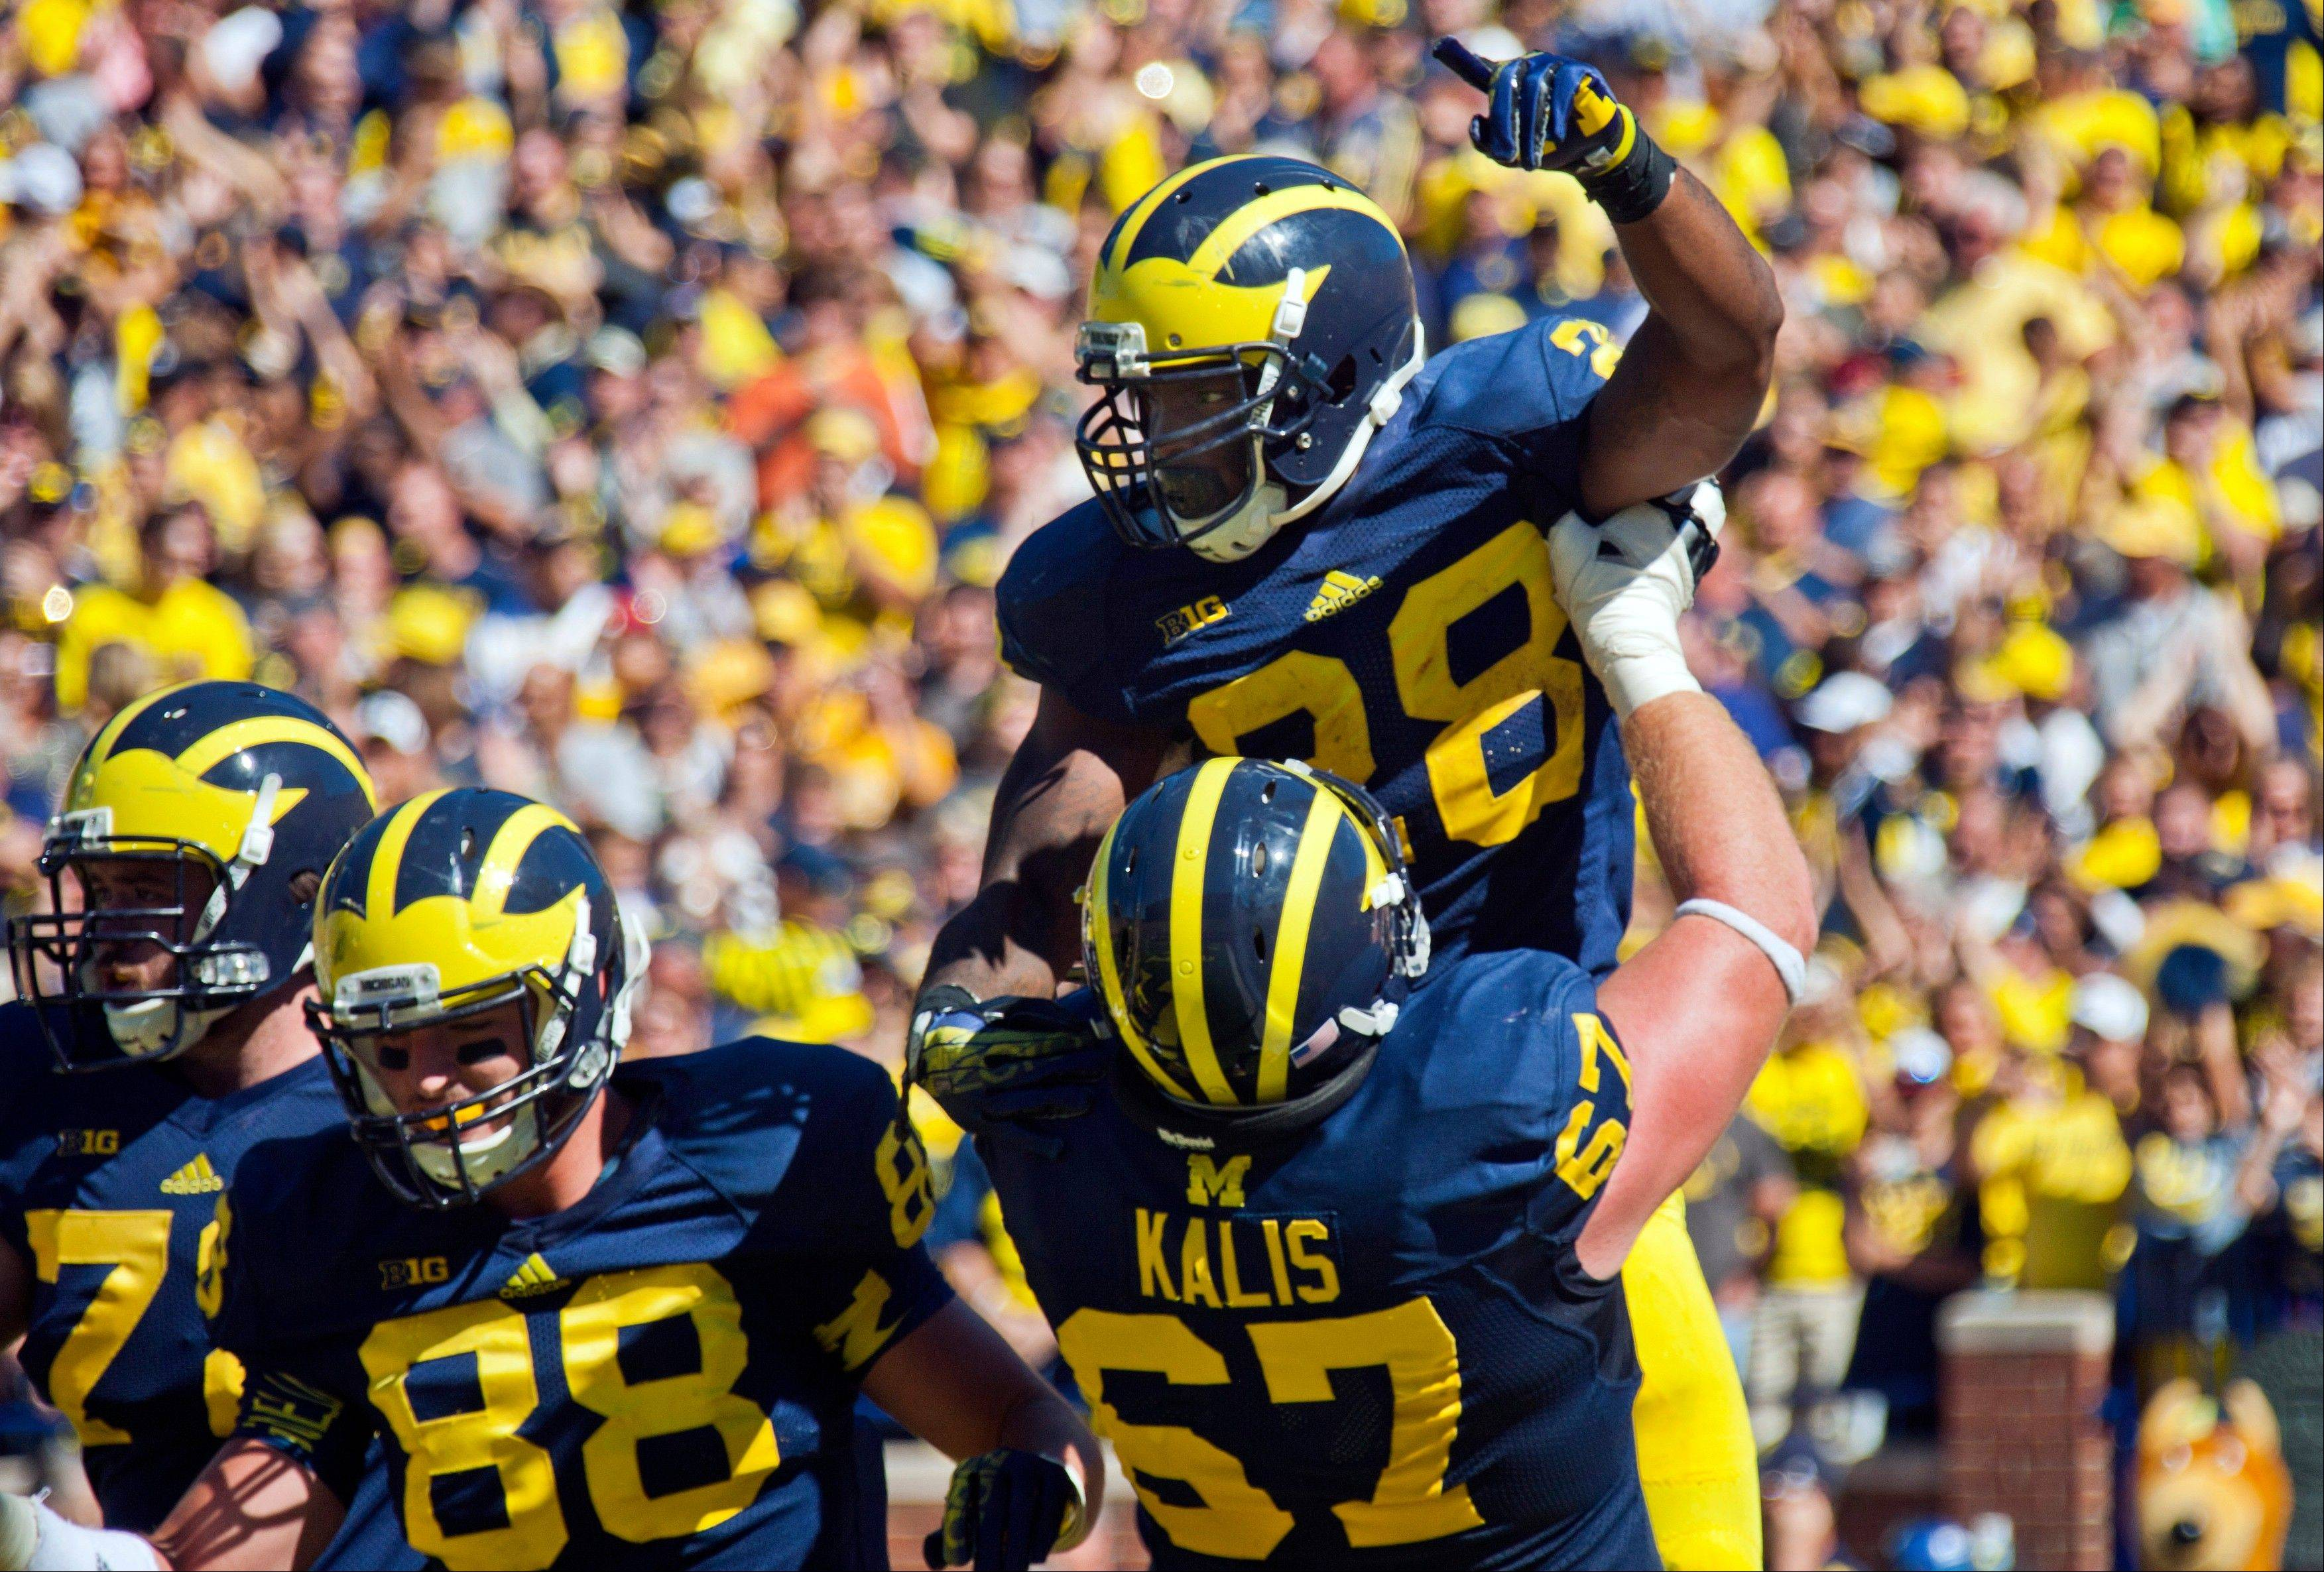 Michigan running back Fitzgerald Toussaint (28) celebrates his touchdown with offensive lineman Kyle Kalis (67) in the fourth quarter of an NCAA college football game against Akron in Ann Arbor, Mich., Saturday, Sept. 14, 2013. Michigan won 28-24.